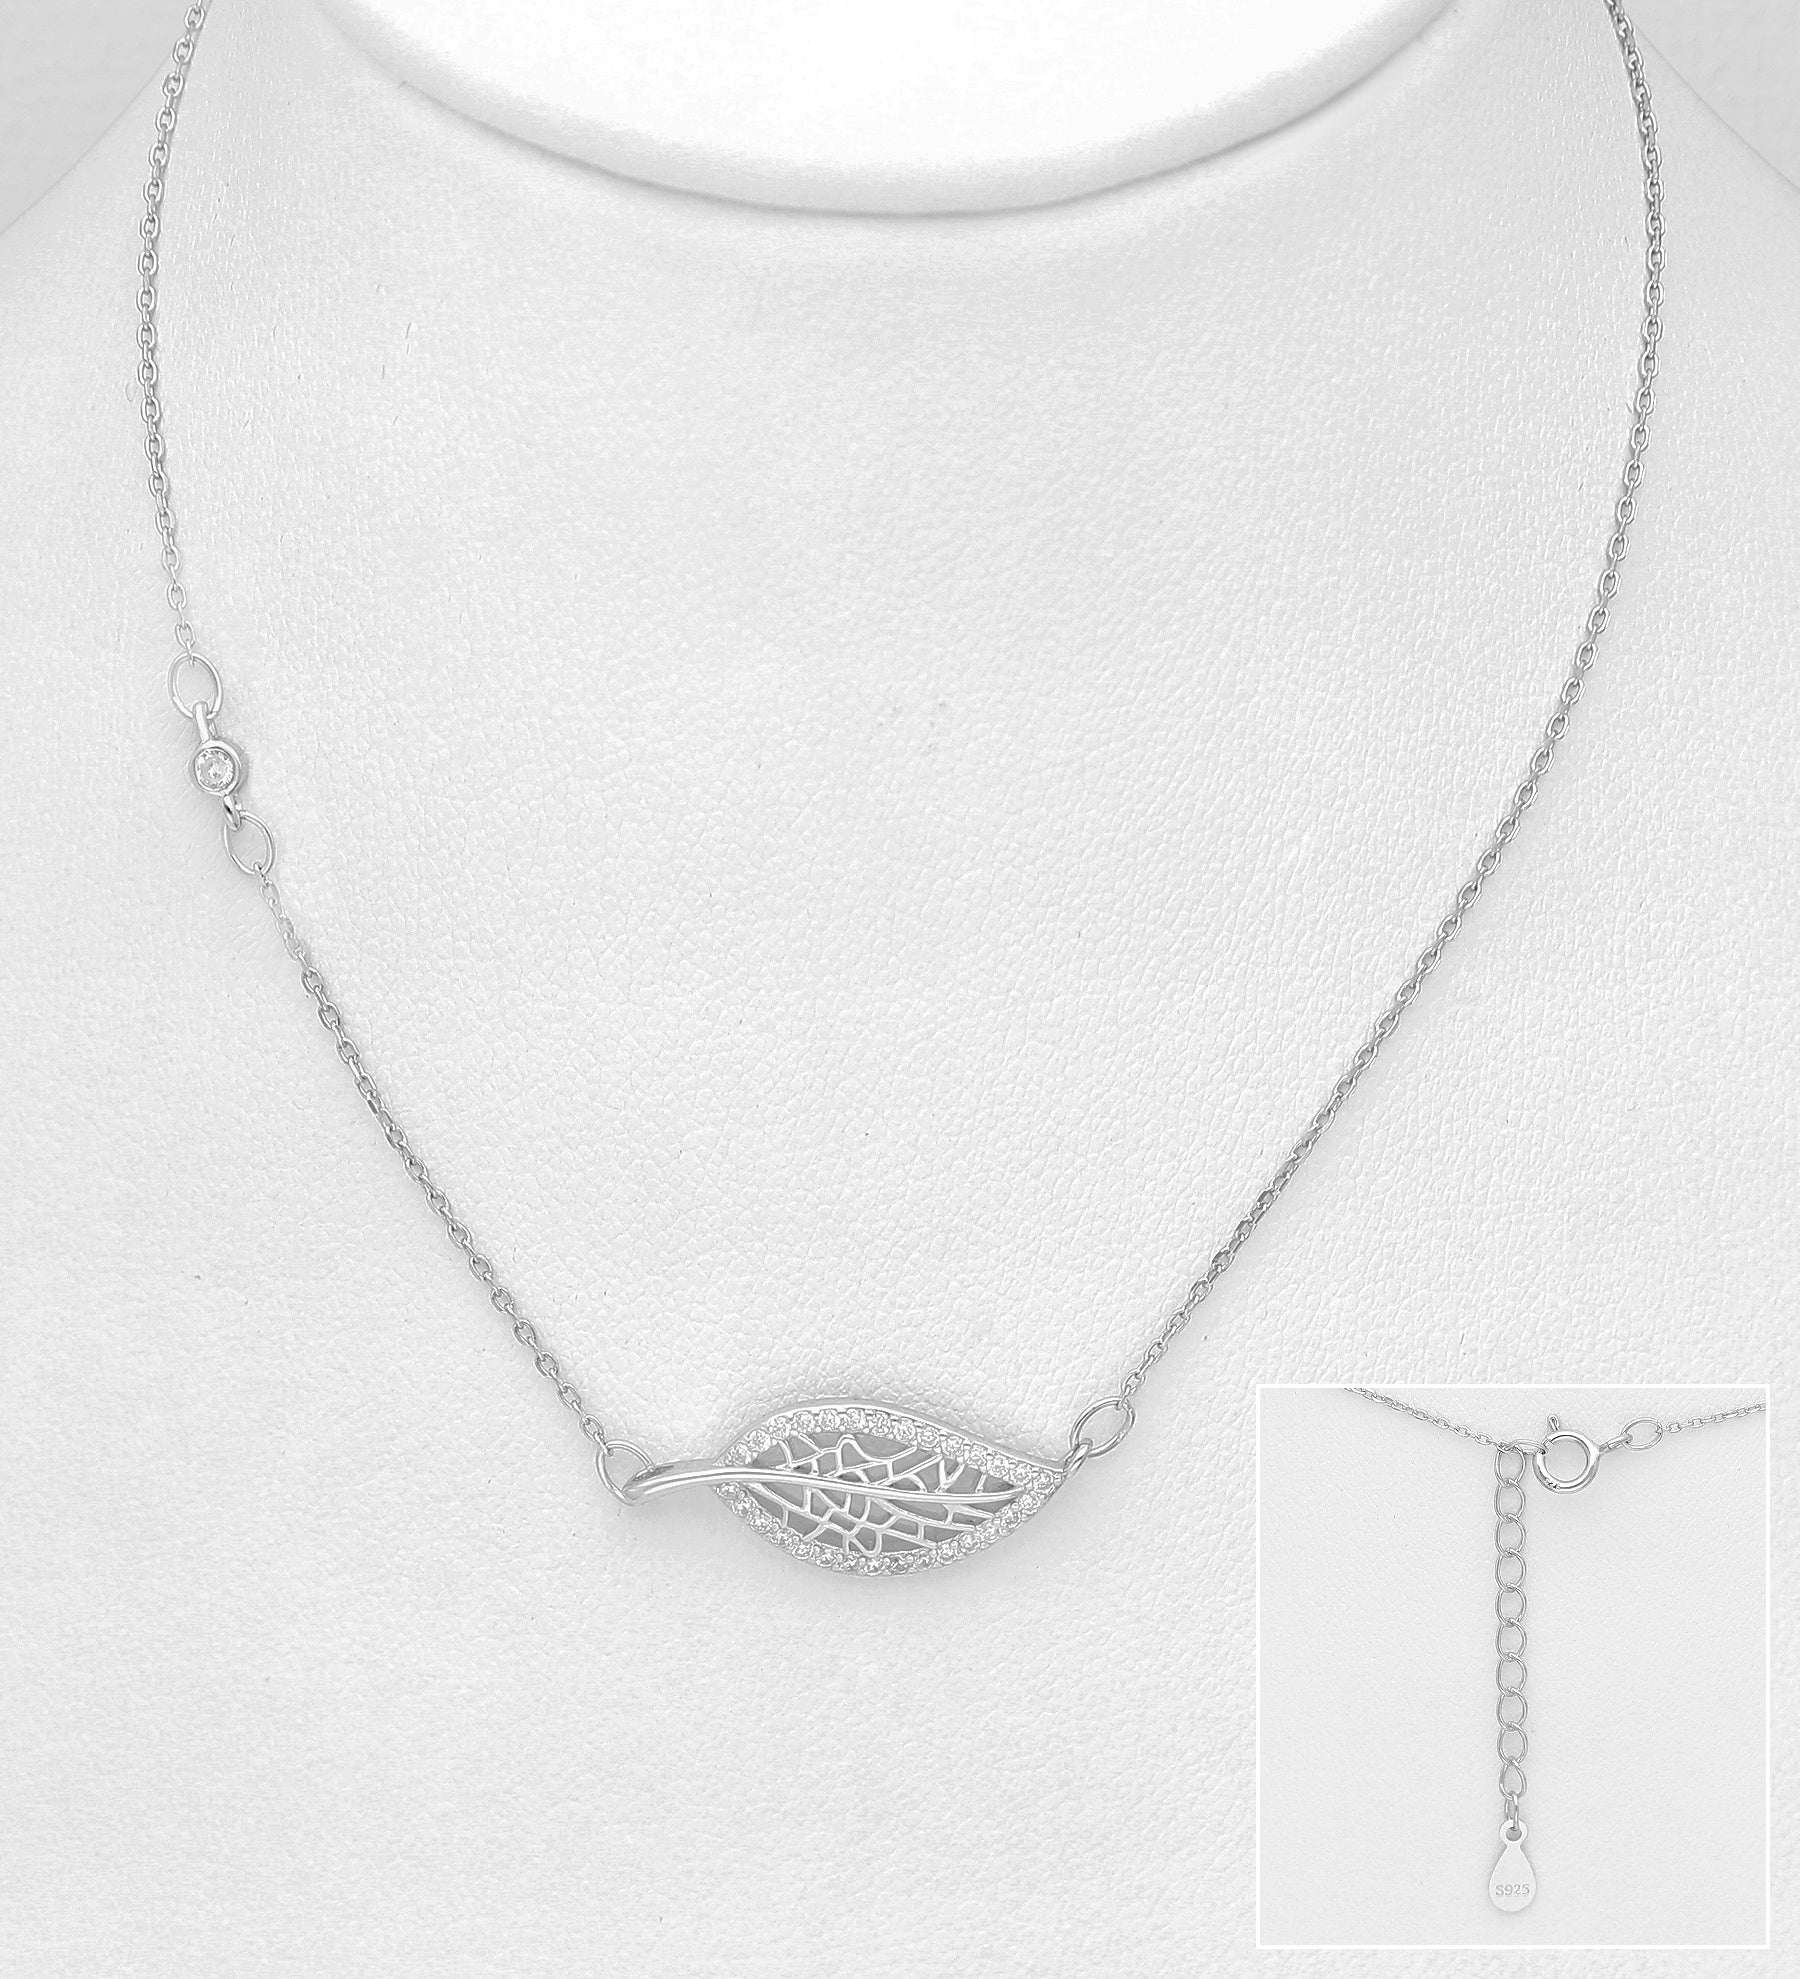 Sideways CZ Leaf Necklace